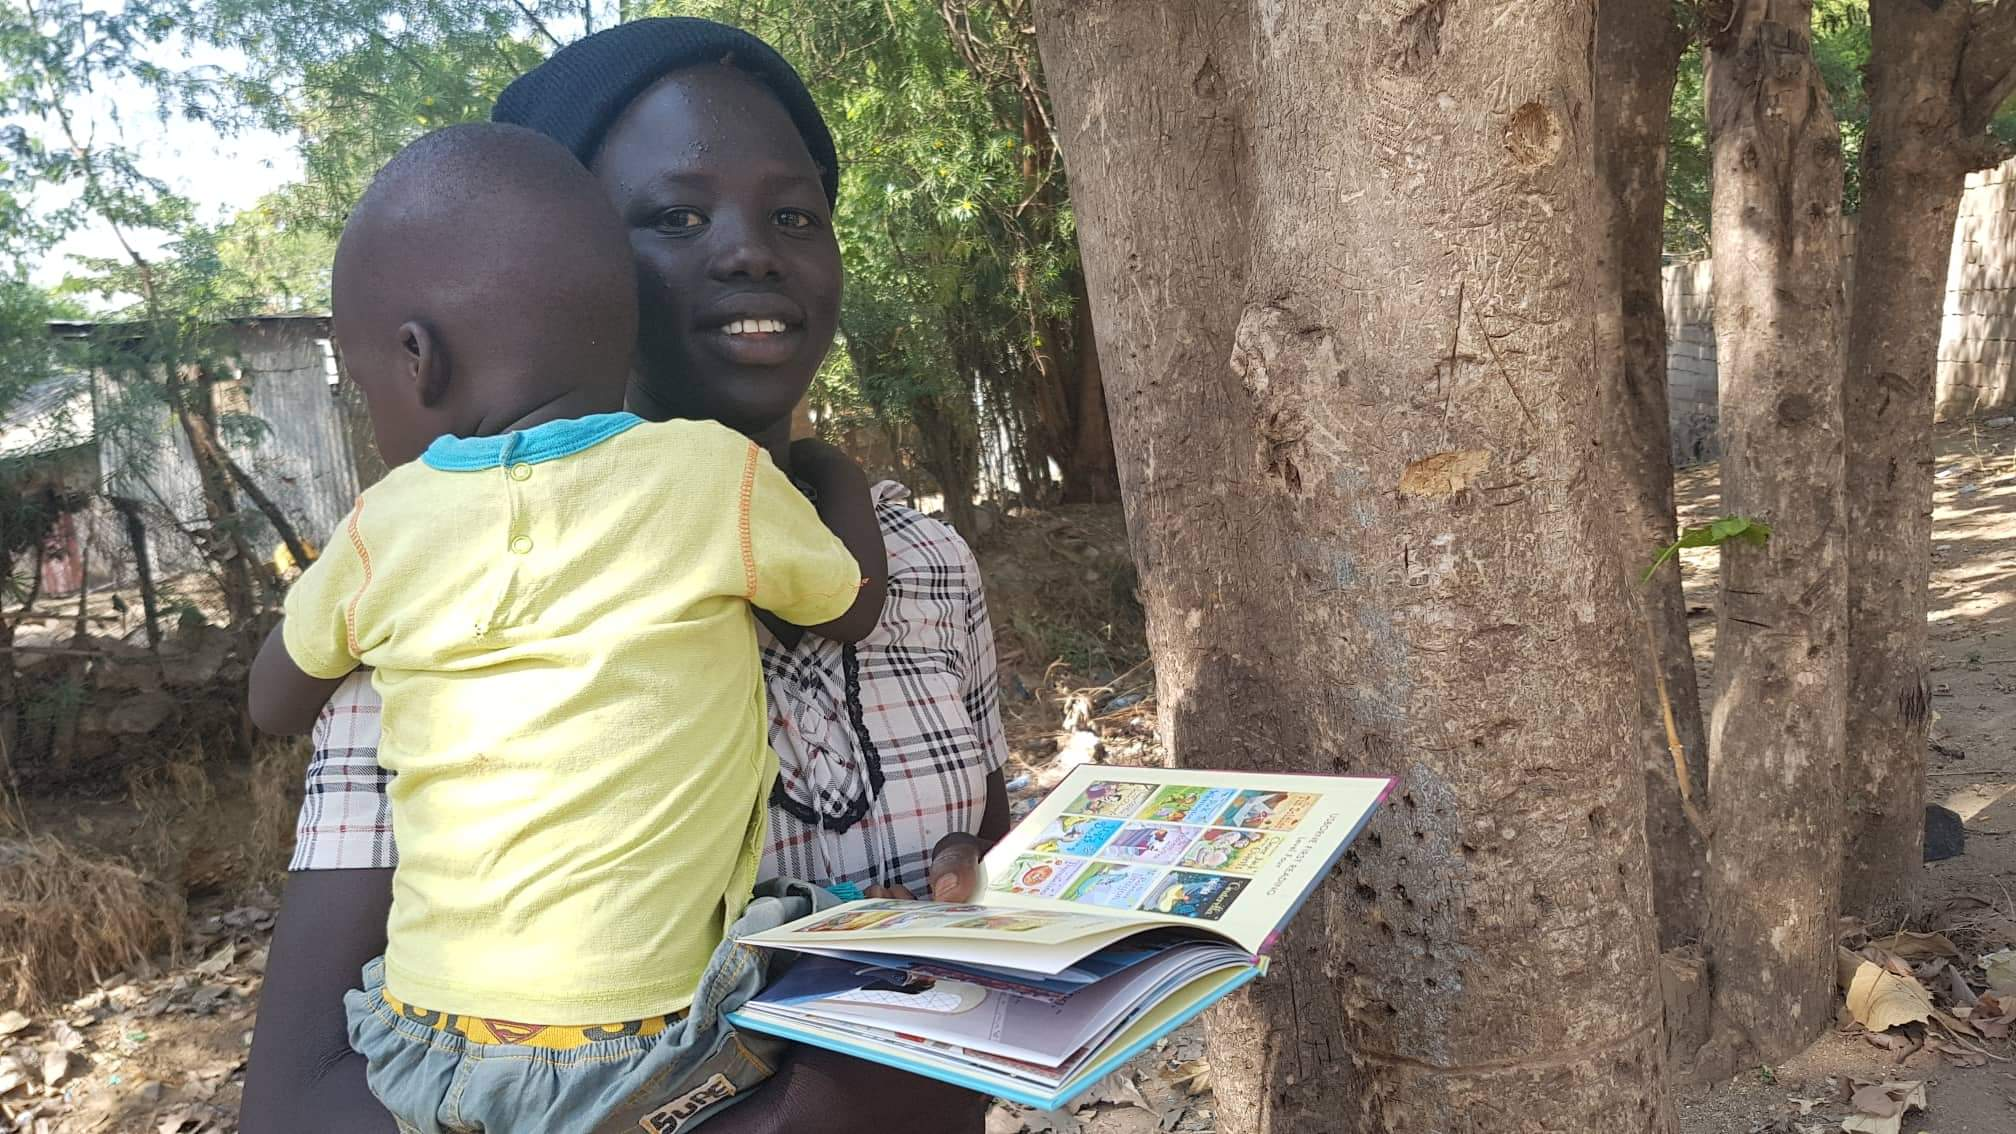 A family receives their first book in Juba, South Sudan.